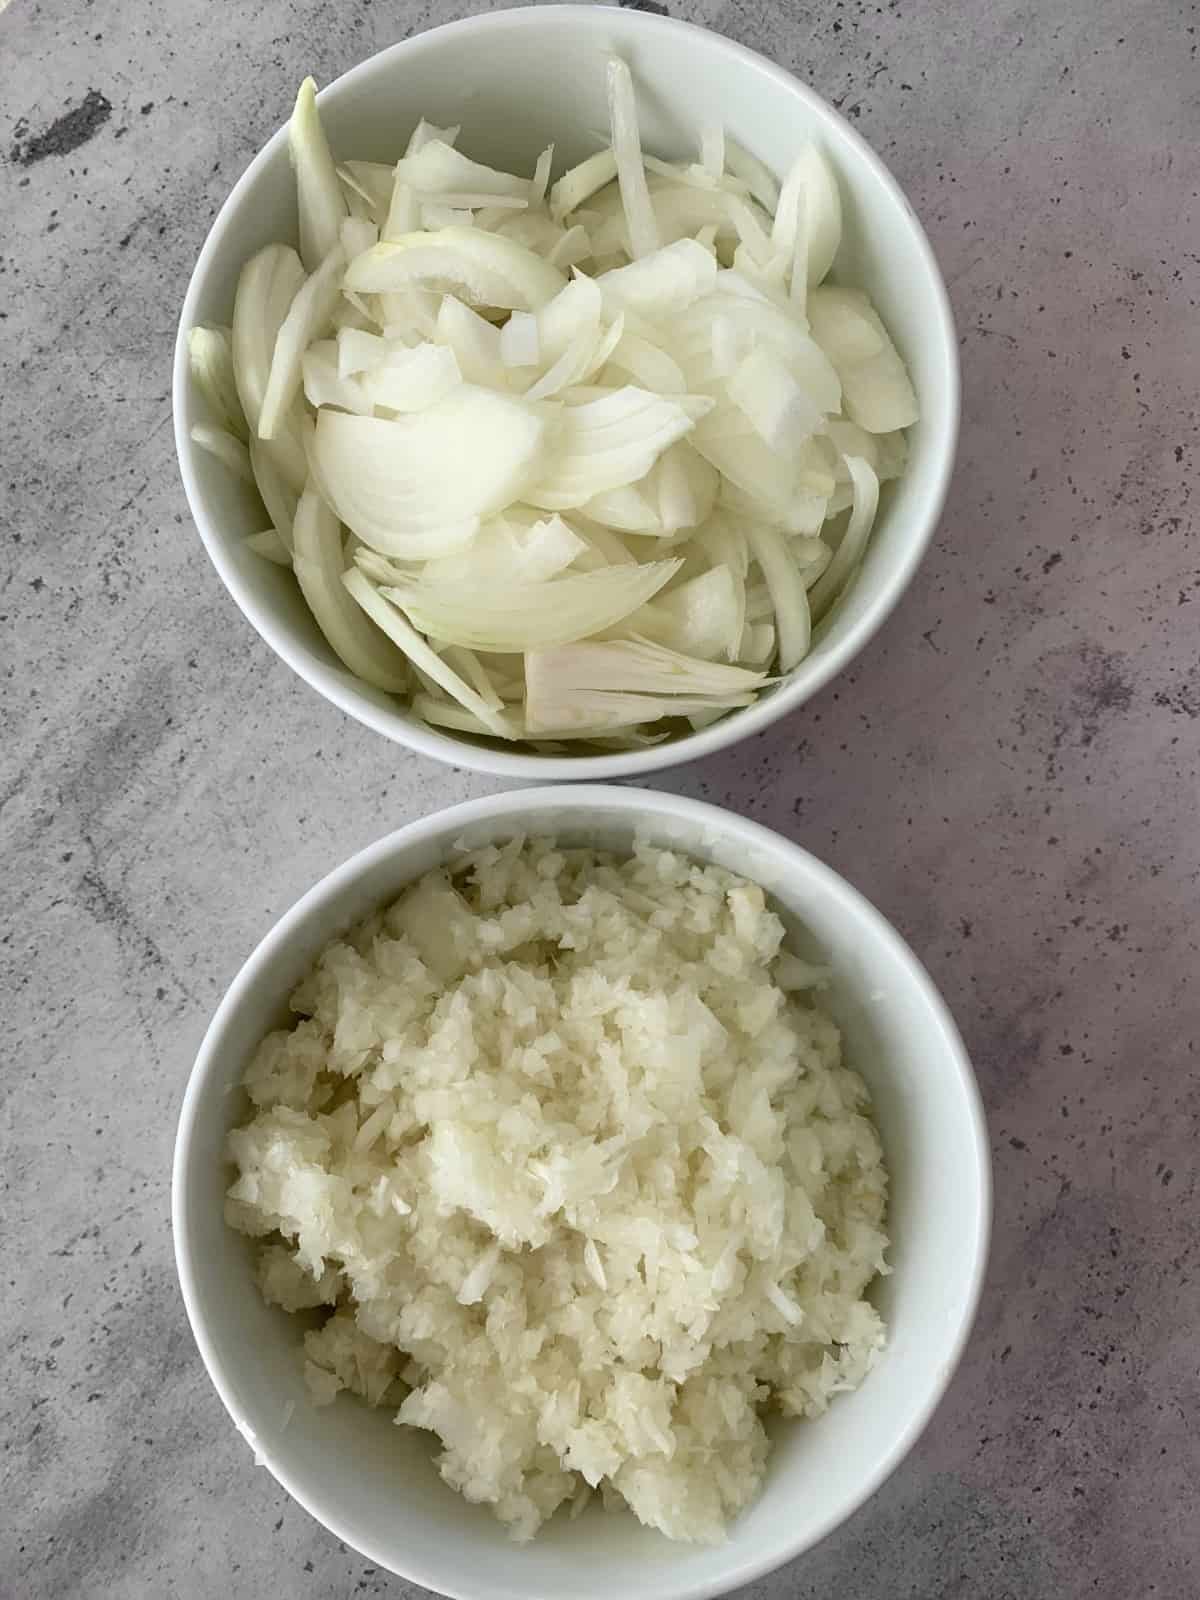 Onions cut differently for mujadara